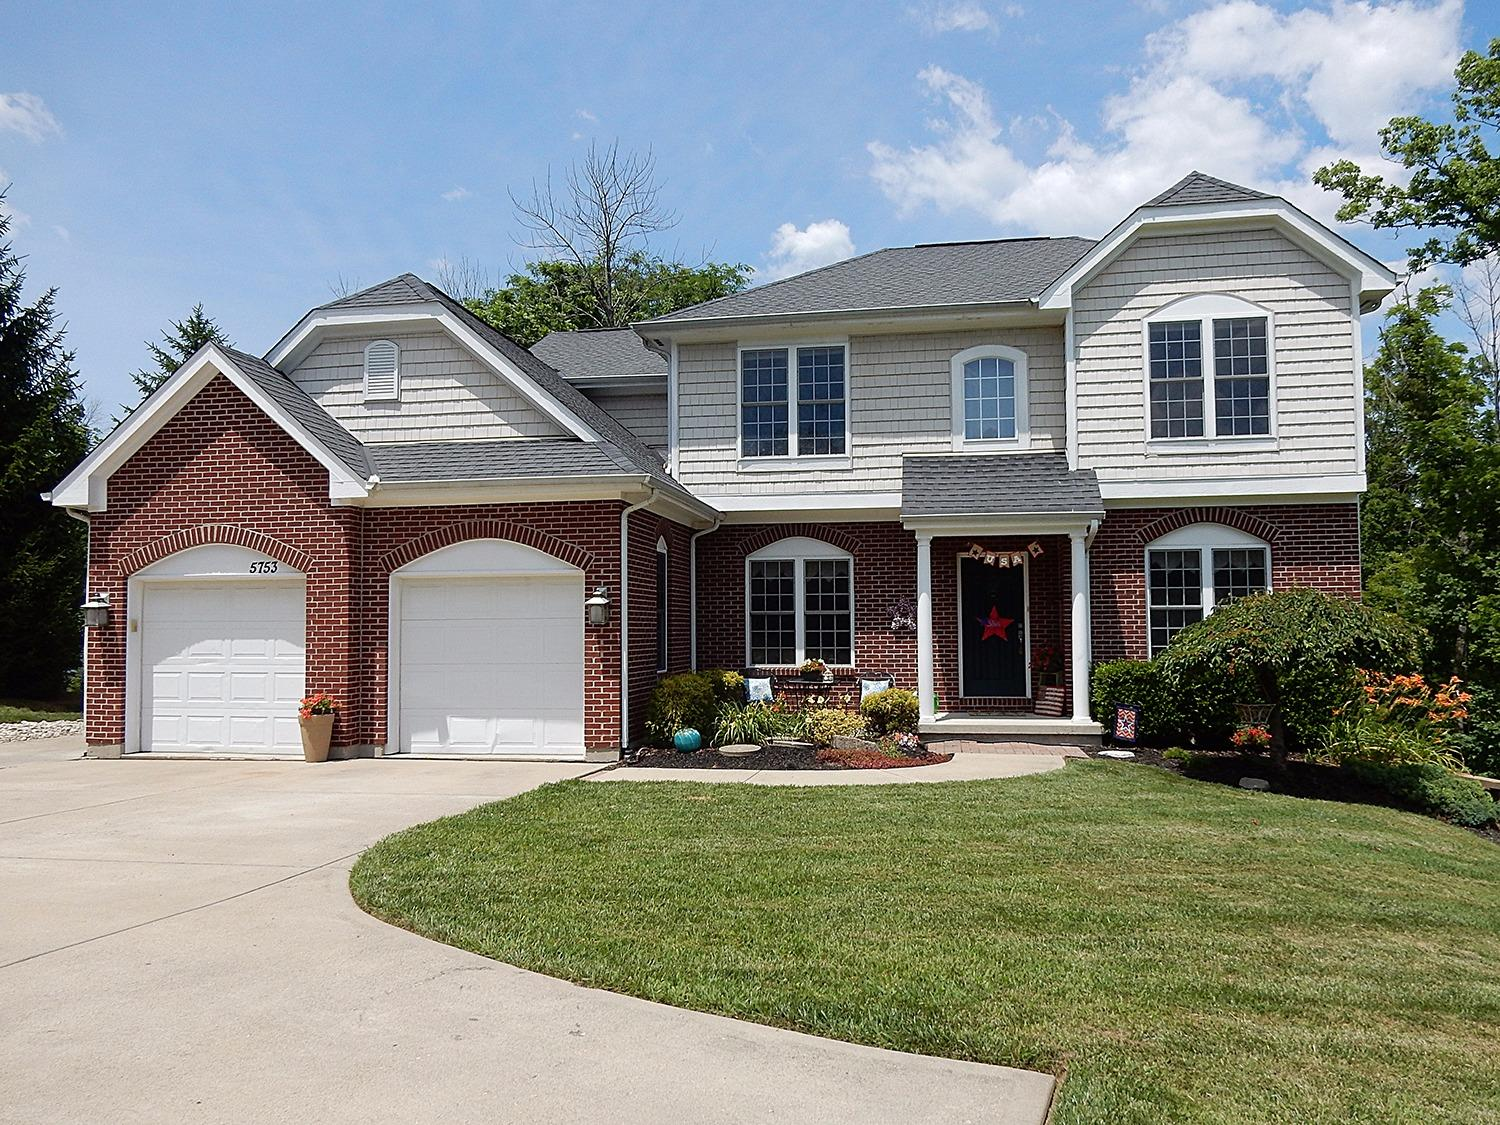 5753 Sutters Mill Dr Monfort Hts., OH